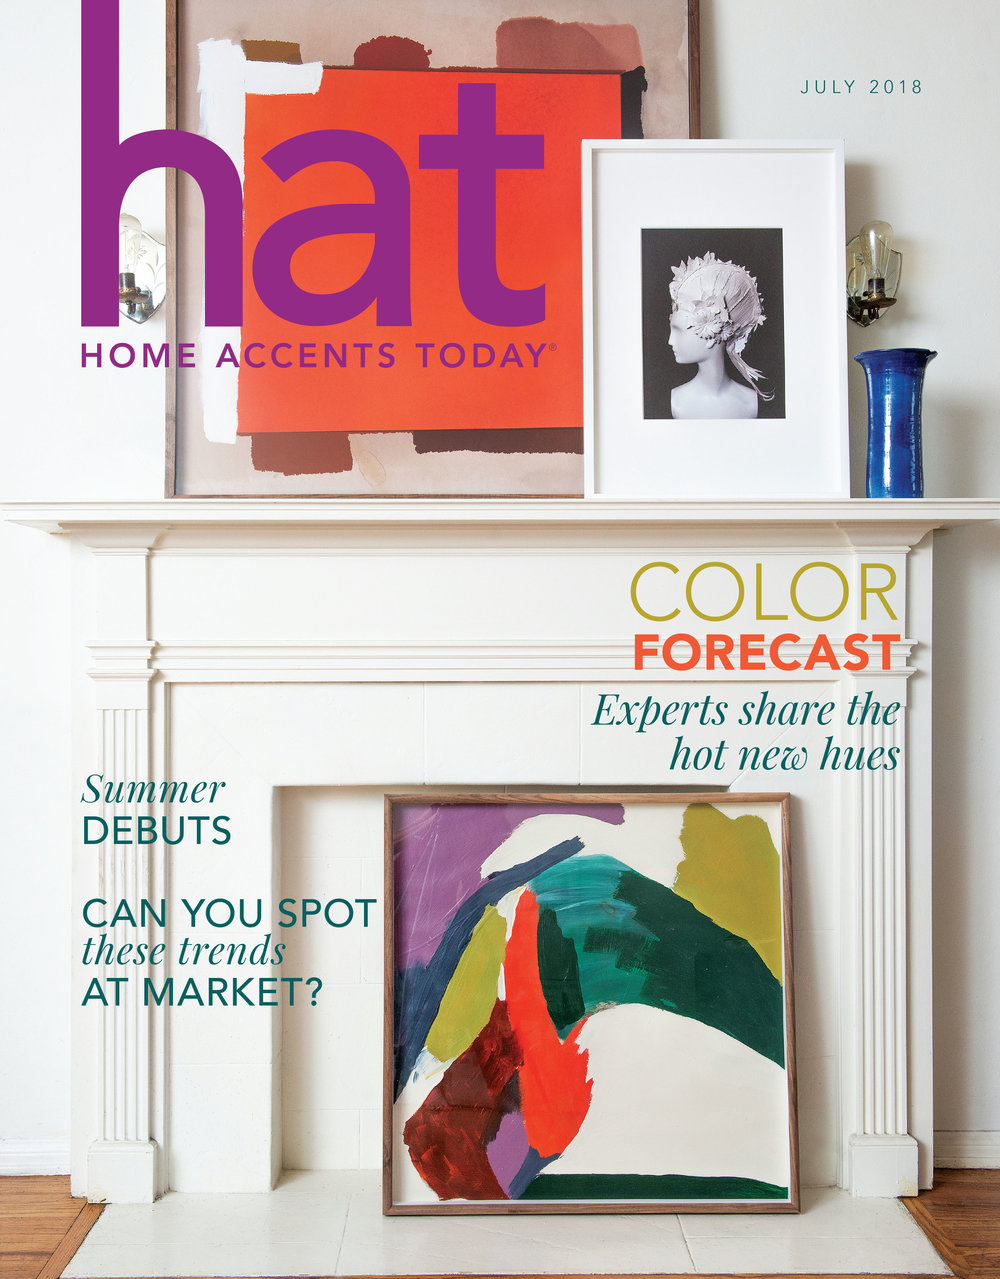 Color Forecast  Home Accents Today - July 2018